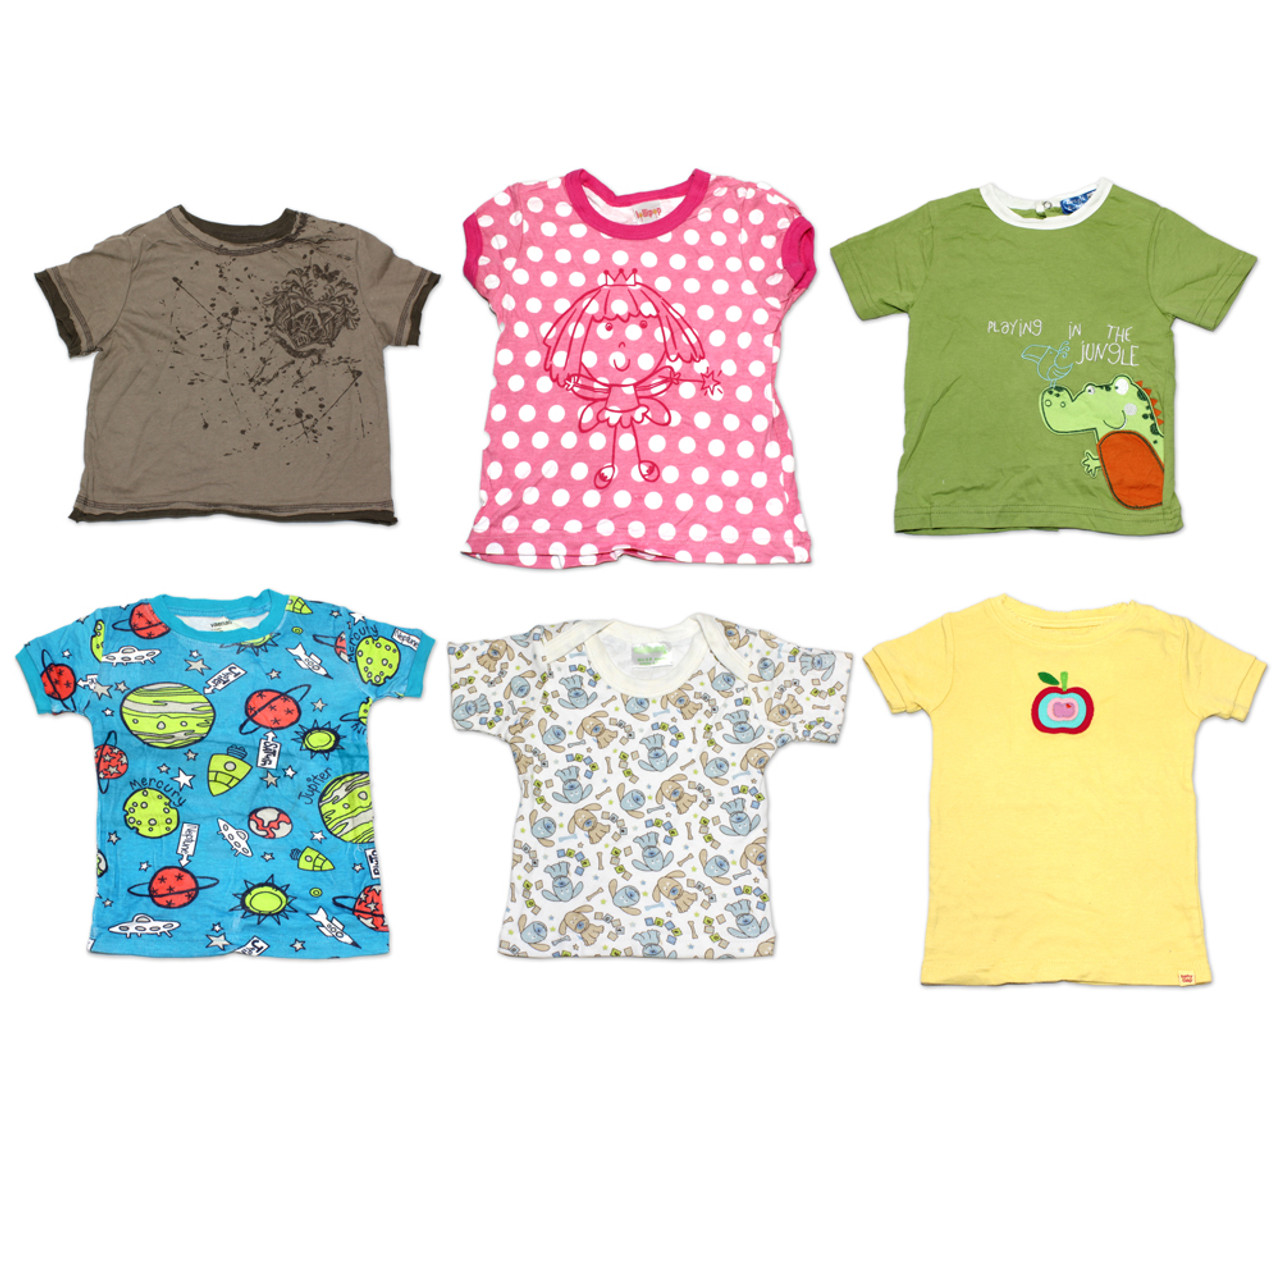 535460ca (72) Children Clothing Wholesale Mixed Styles Sizes Boy Girl Baby T-Shirts